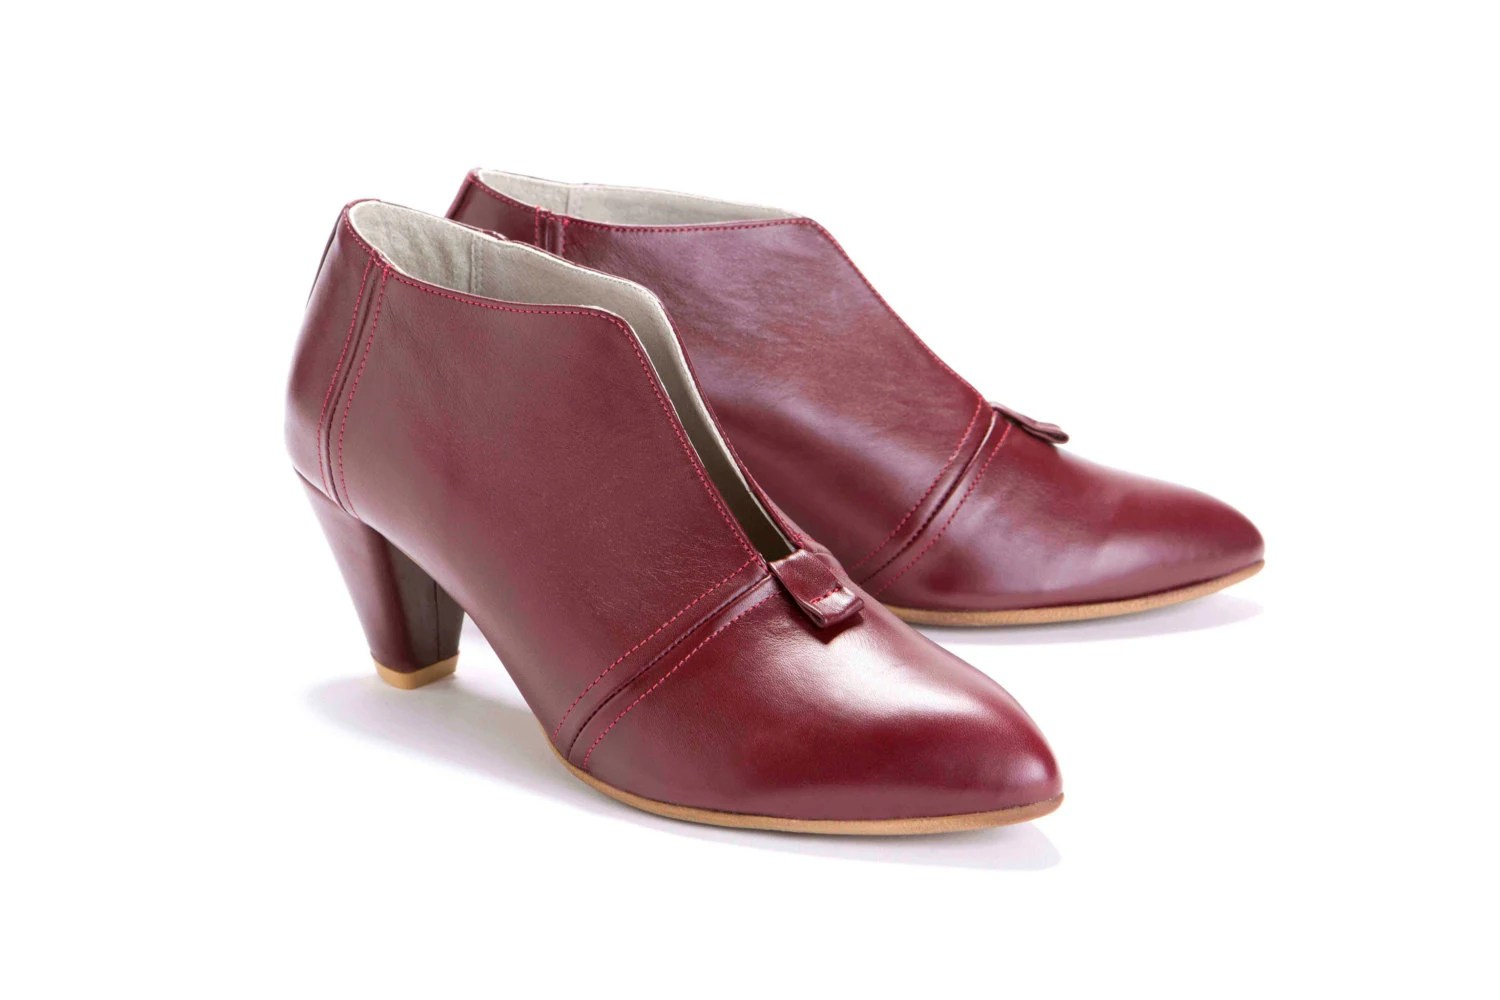 Womens Oxblood High Heel Ankle Shoes with V Cut // US size 4.5-11 - OliveThomasShoes